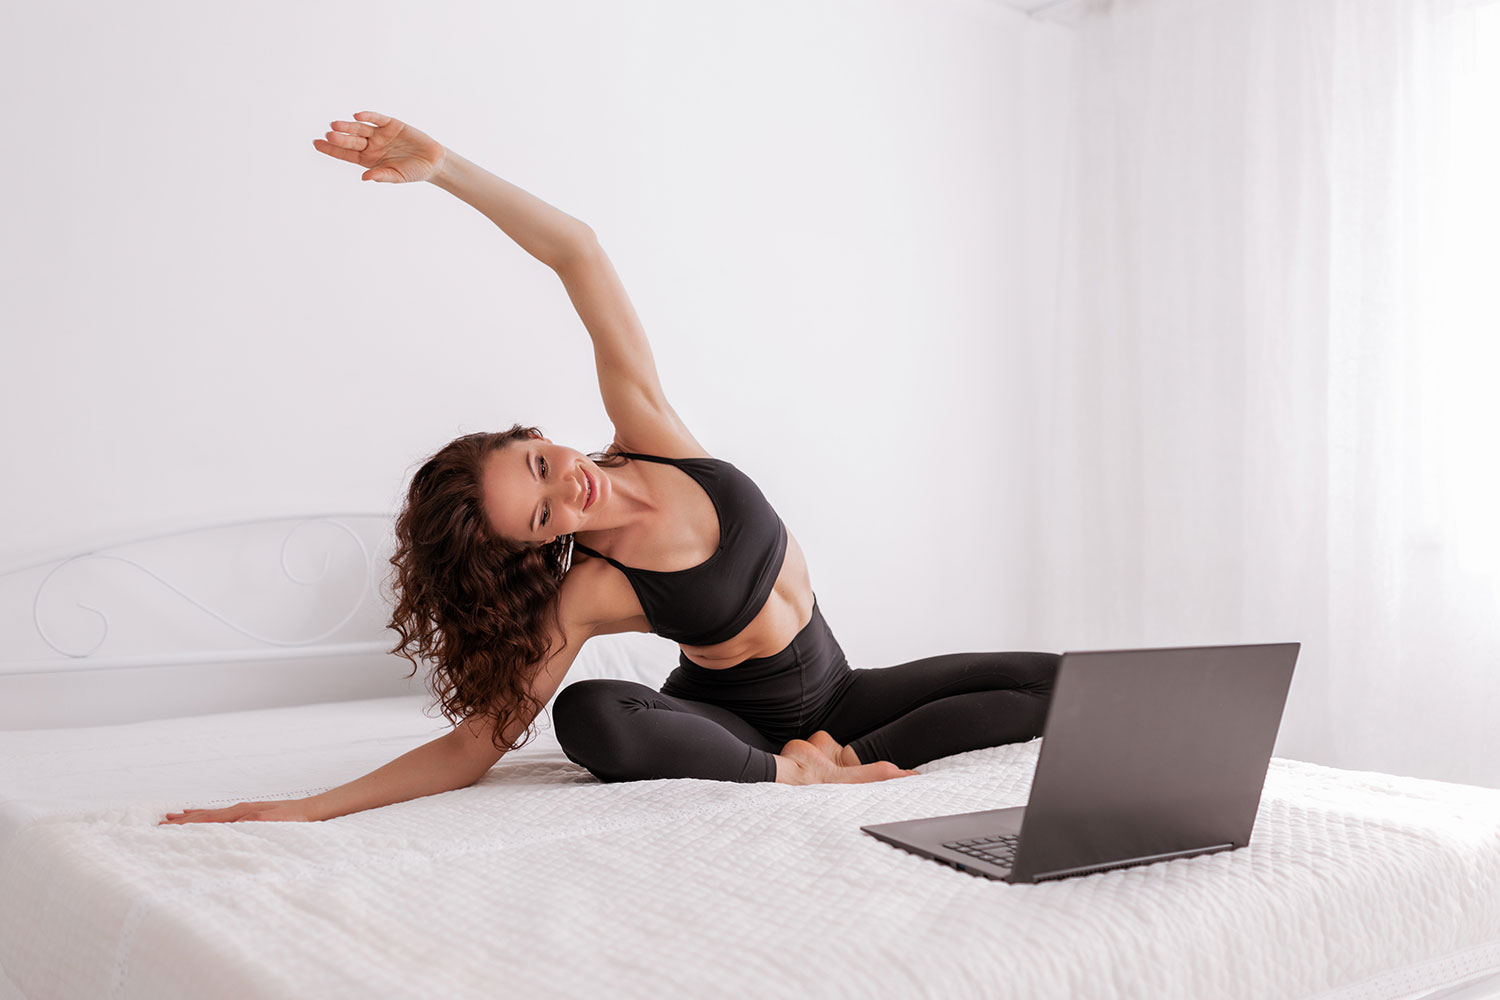 30 Mornings of Yoga - Create Your Own Online Yoga Challenge